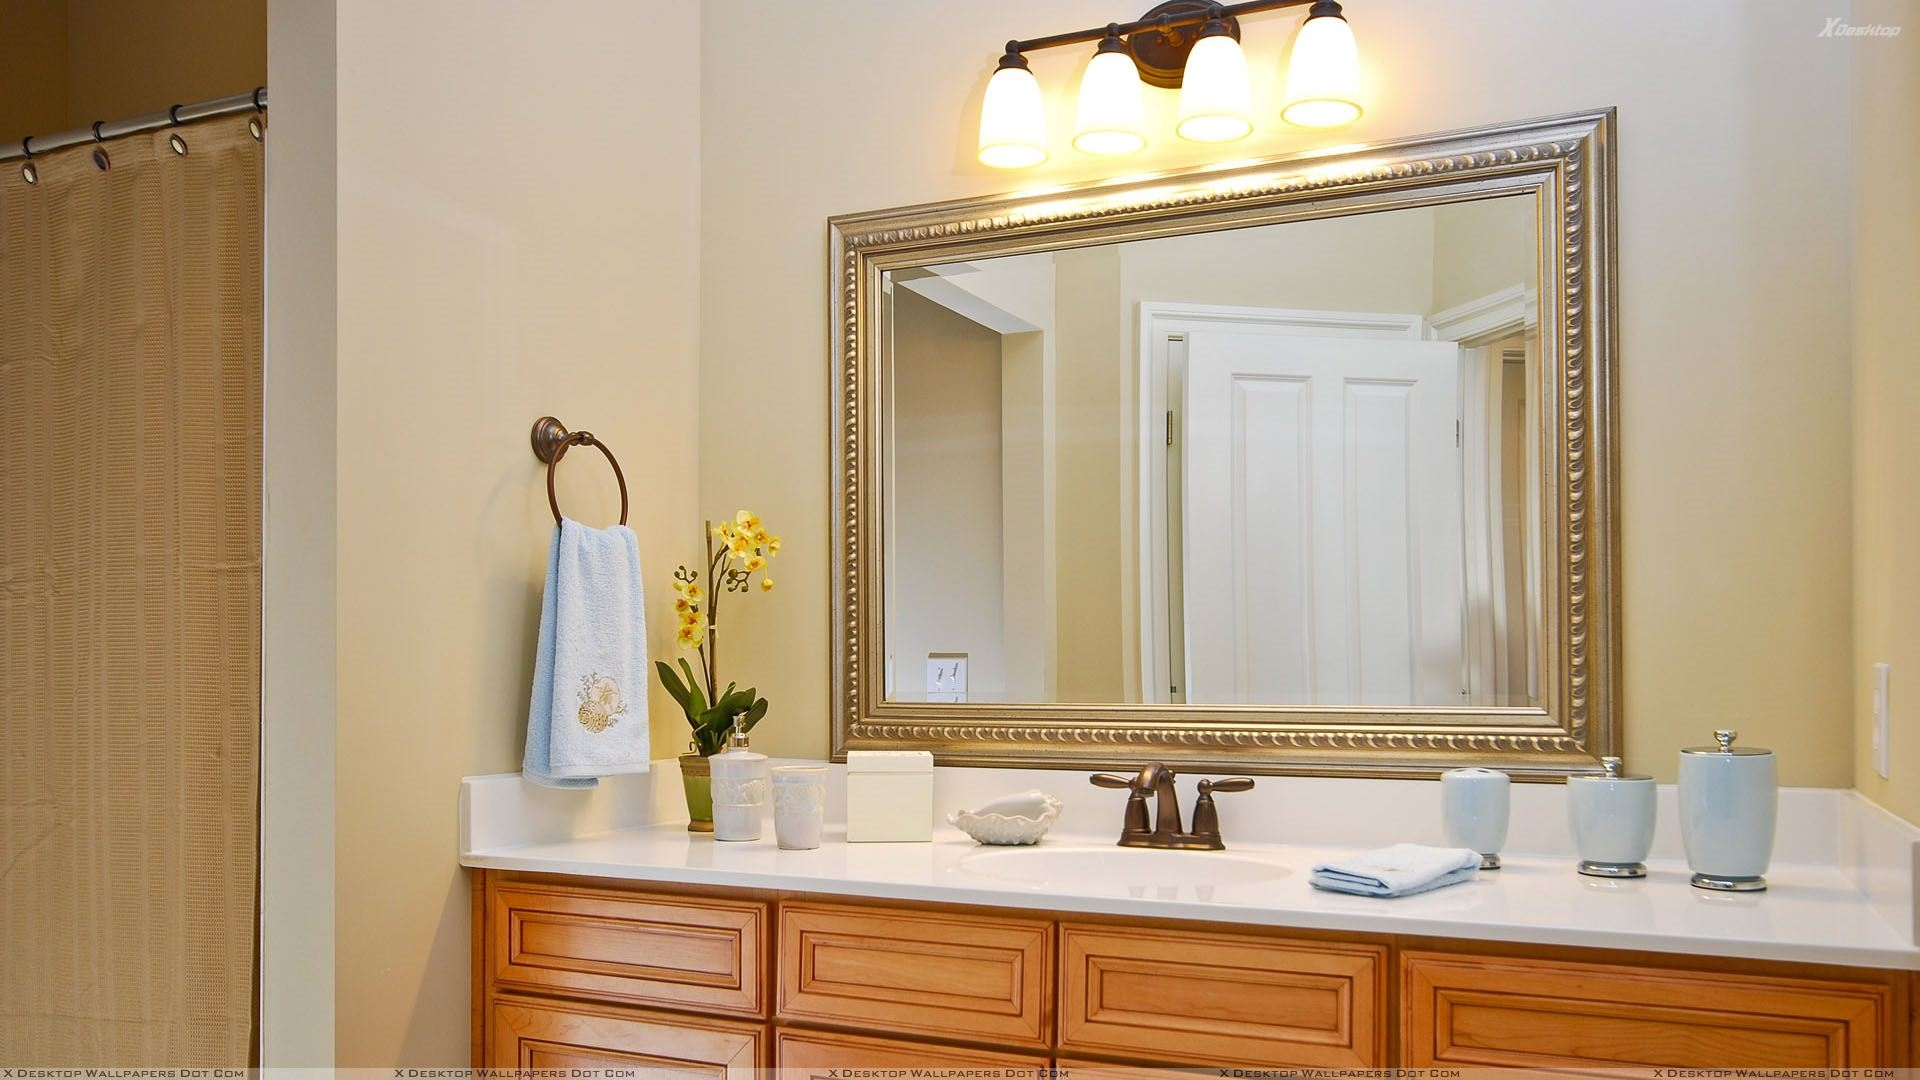 Diy Bathroom Mirror Frame Kit